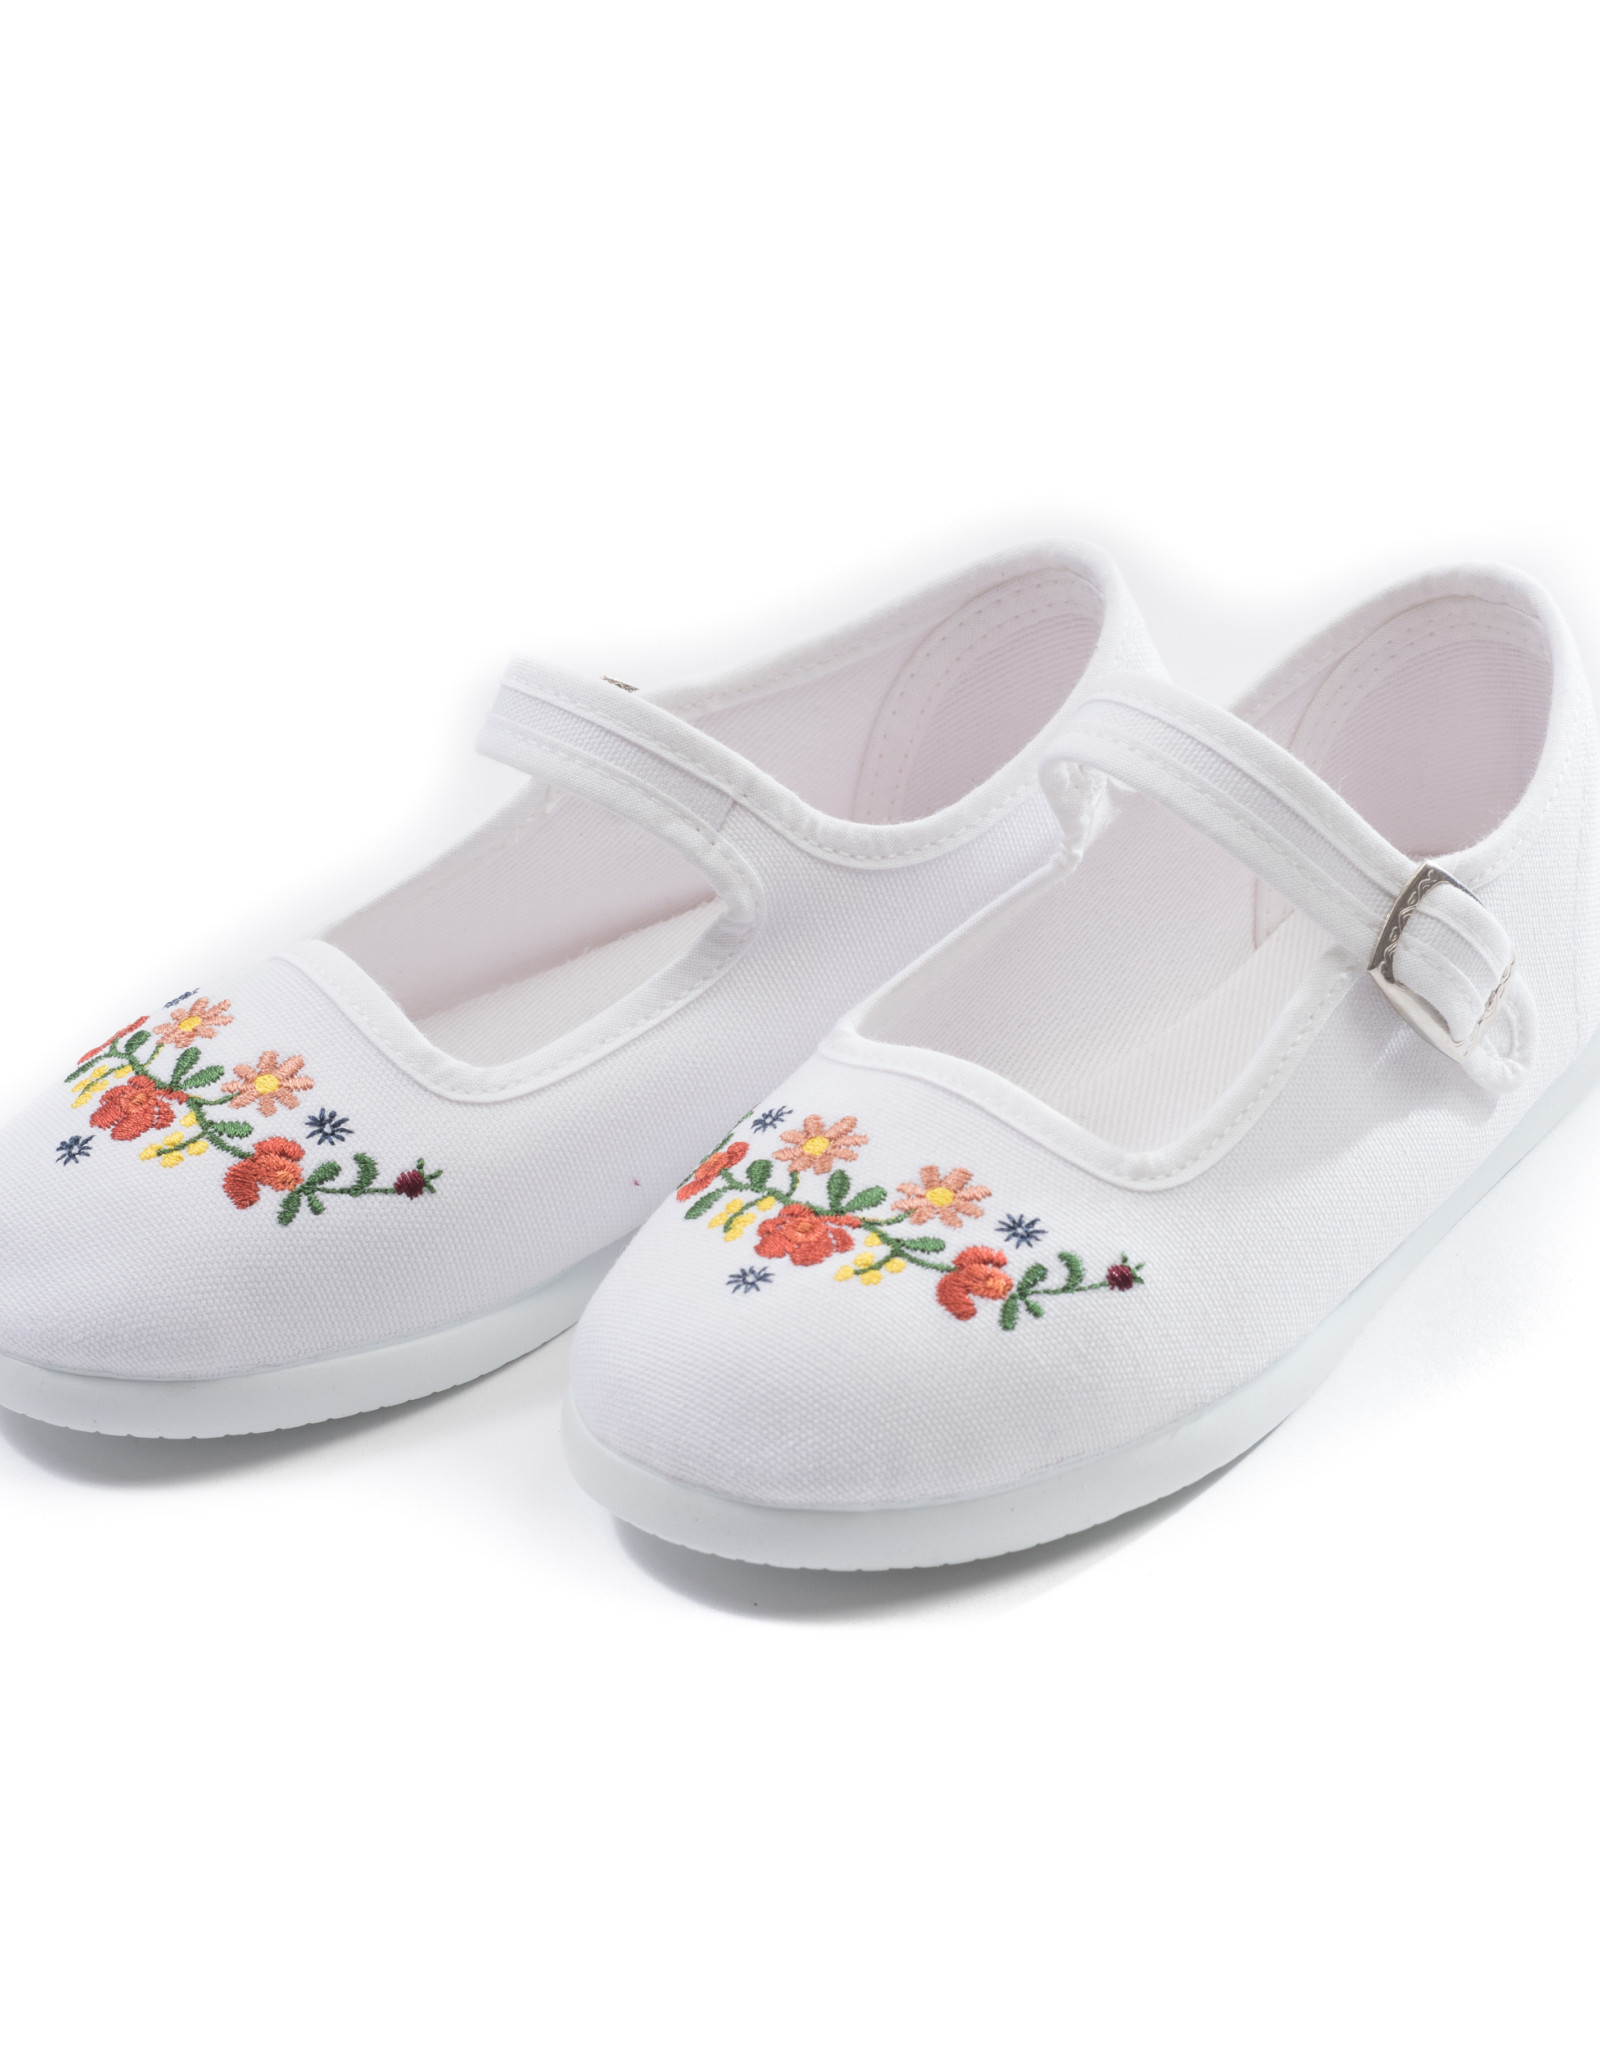 Bonton Embroidered baby shoes